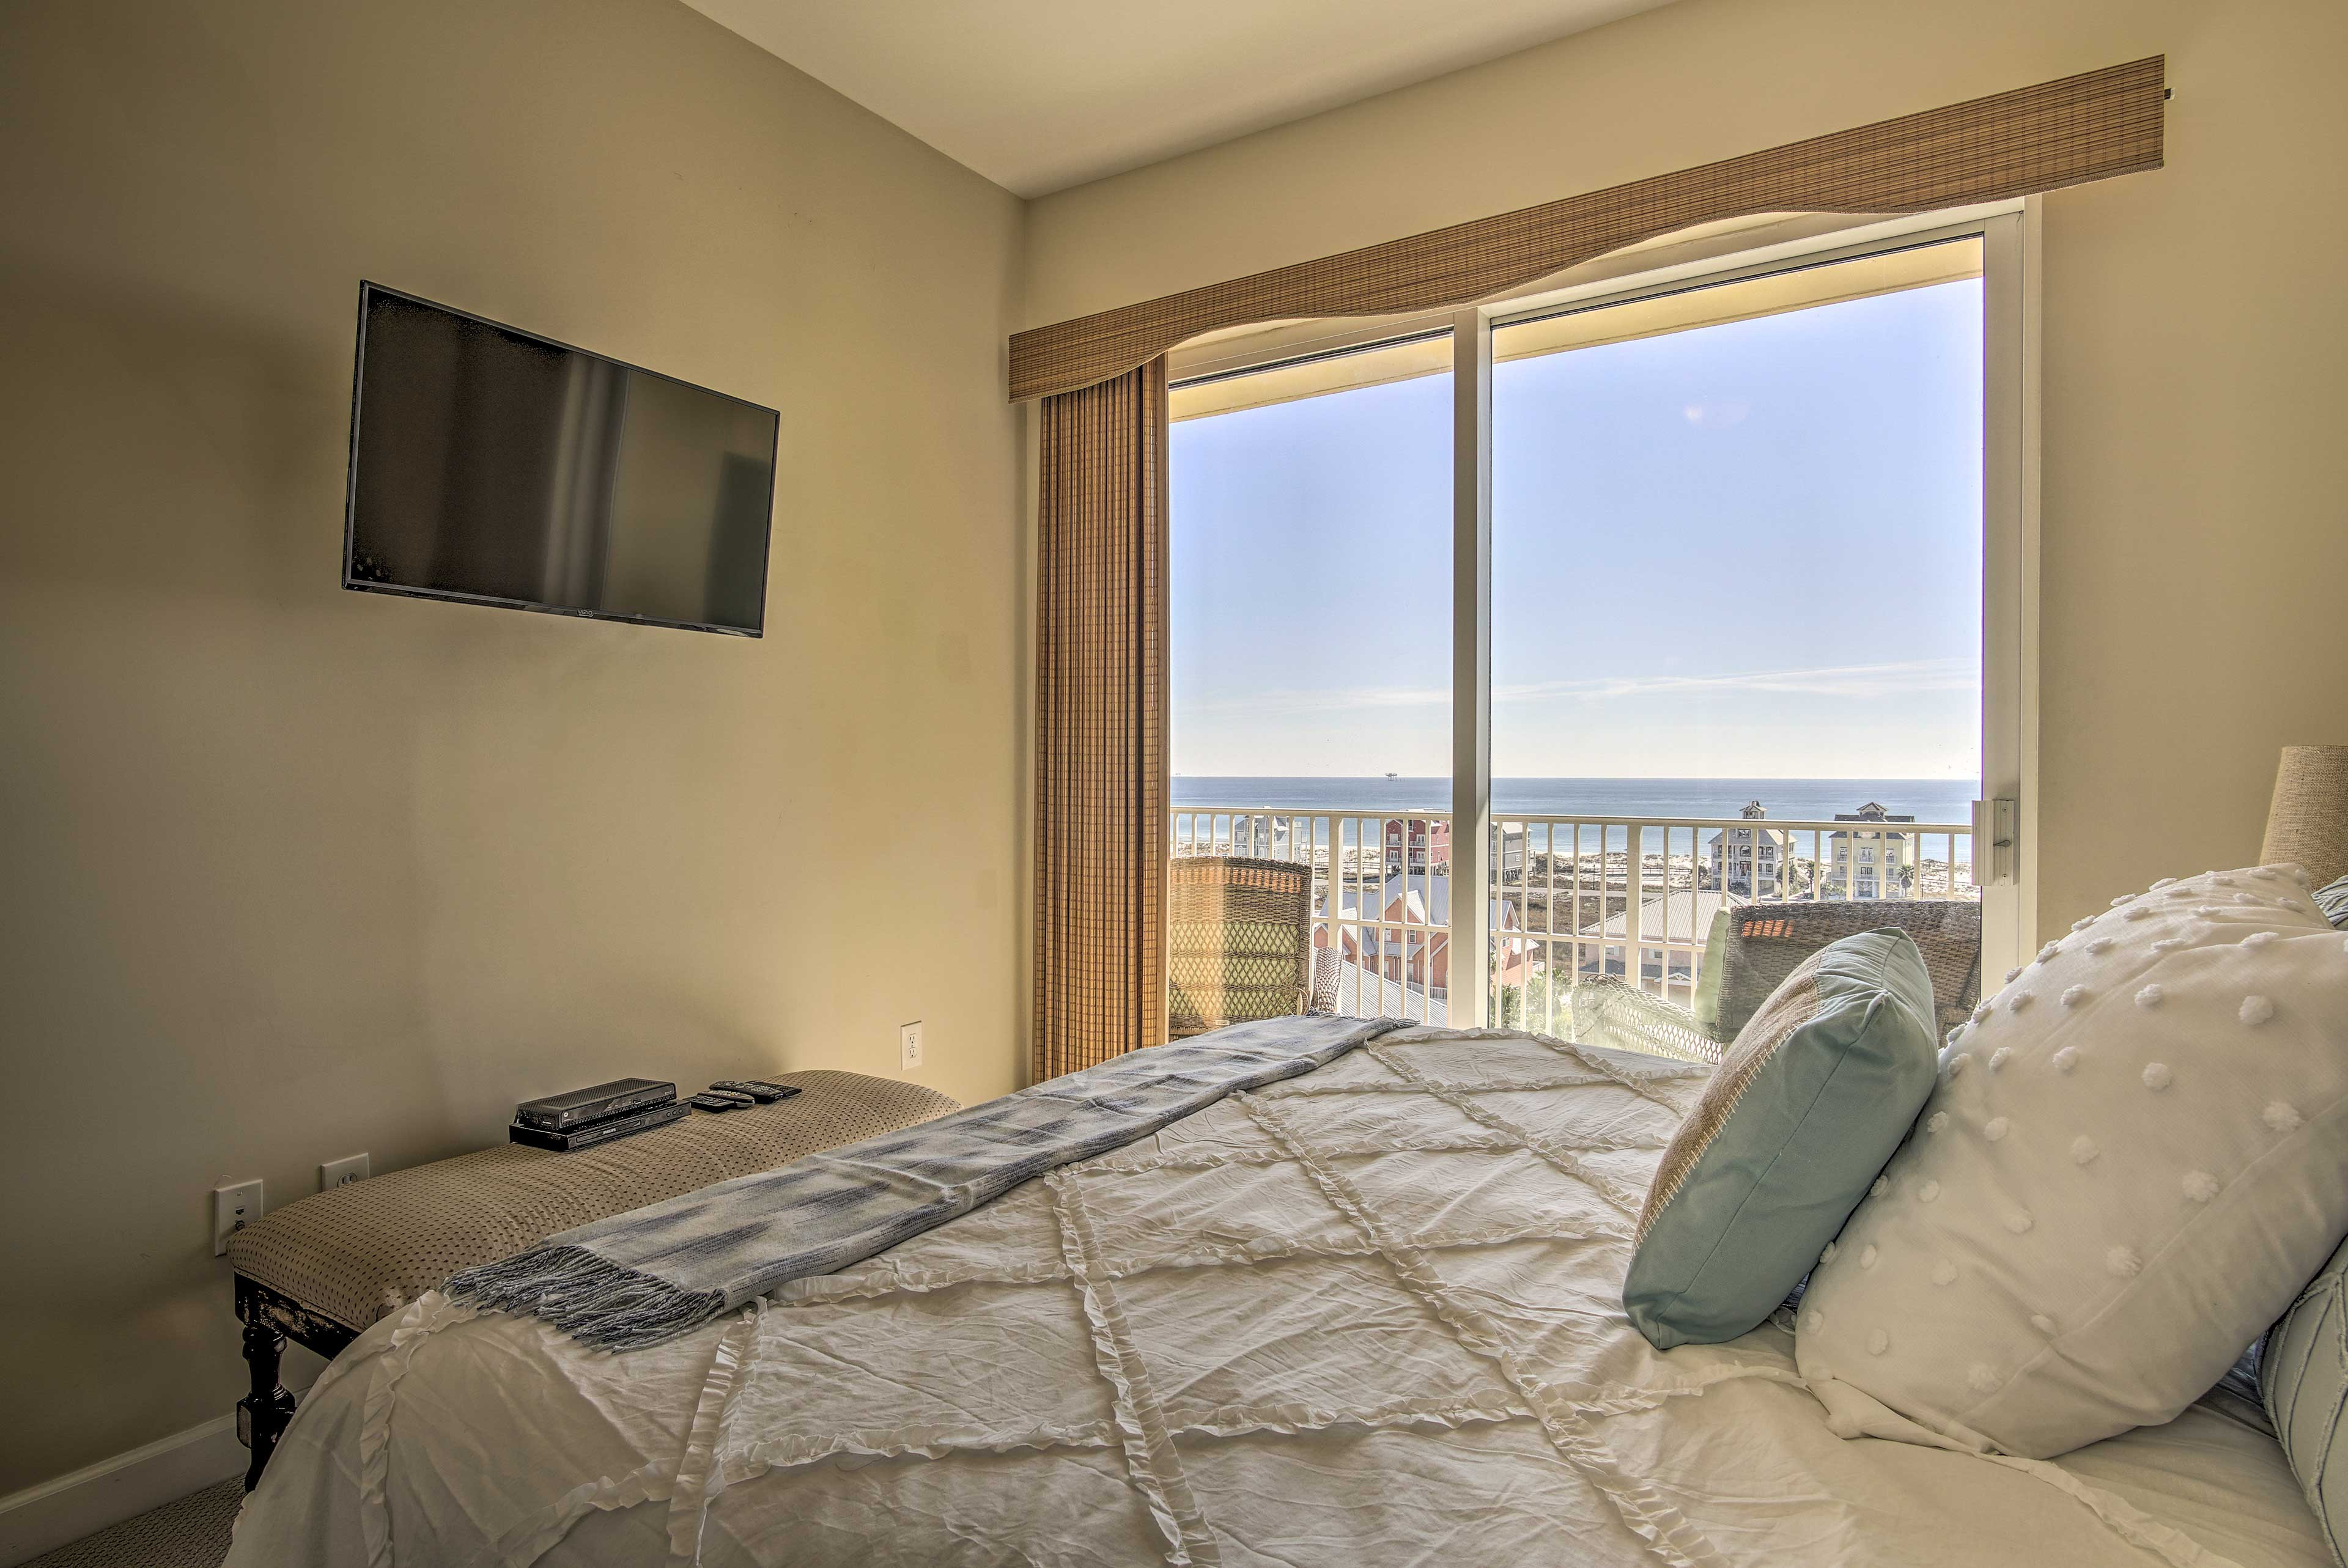 Direct balcony access makes this room unbeatable.